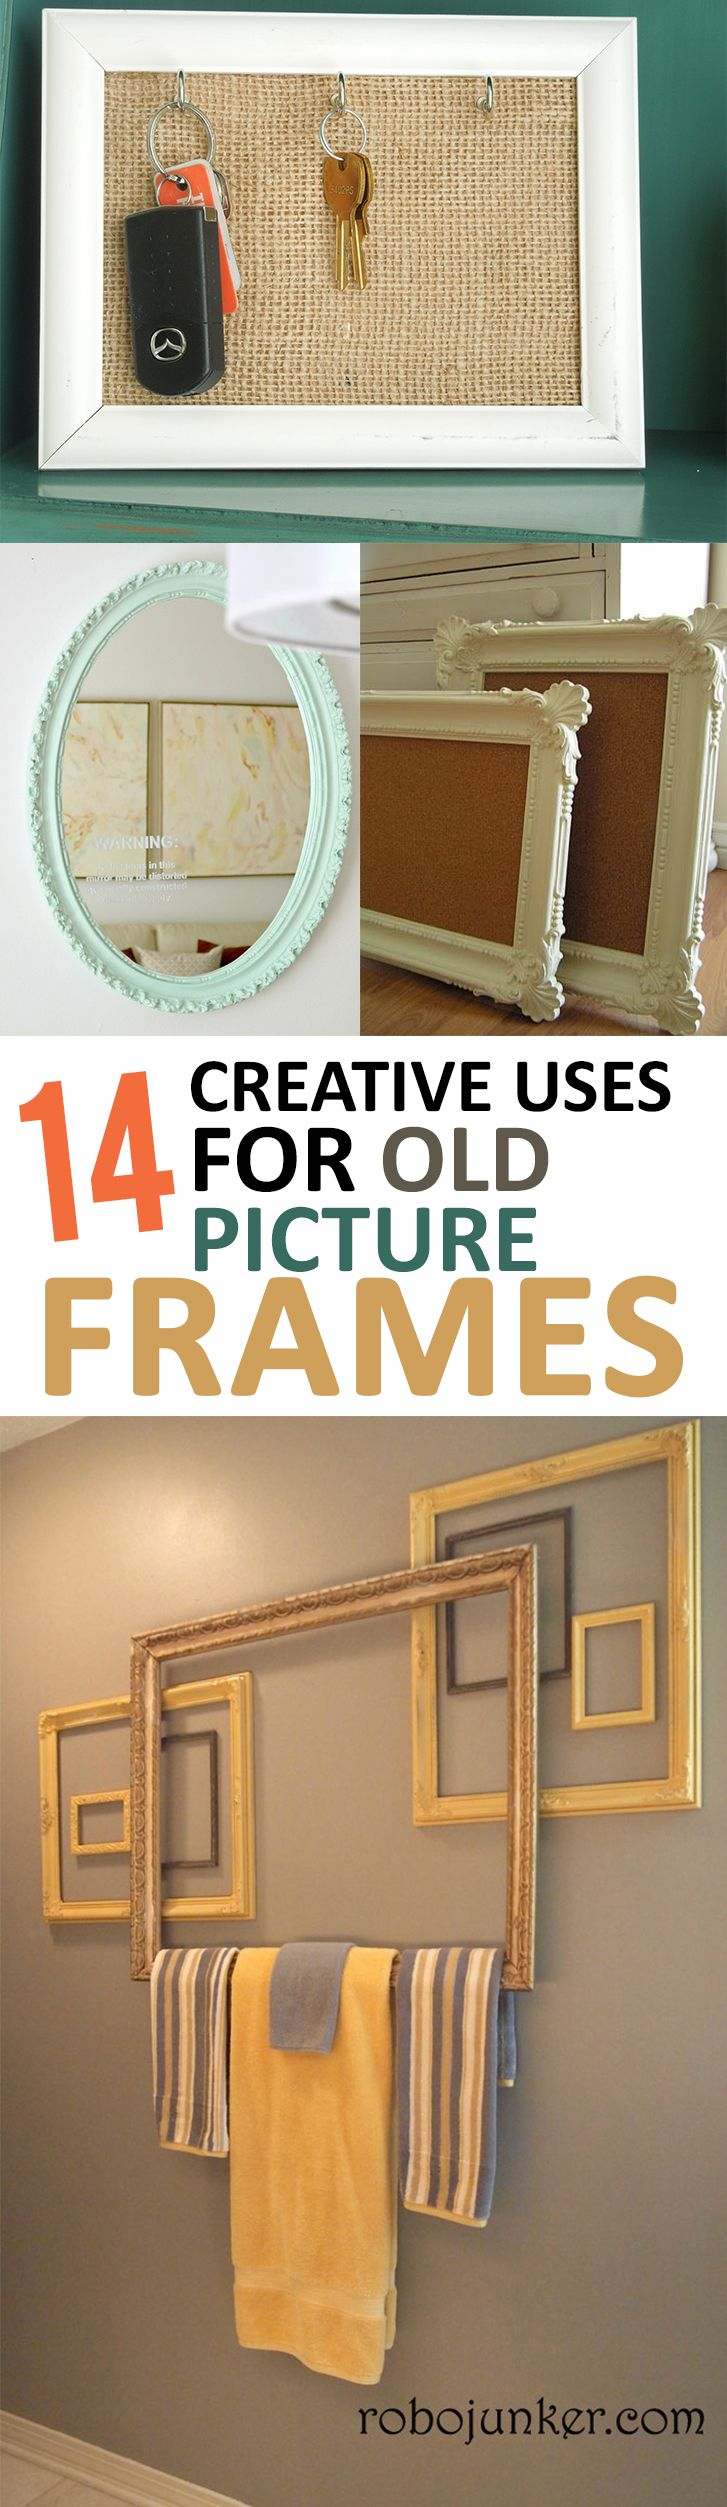 14 Creative Uses For Old Picture Frames Old Picture Frames